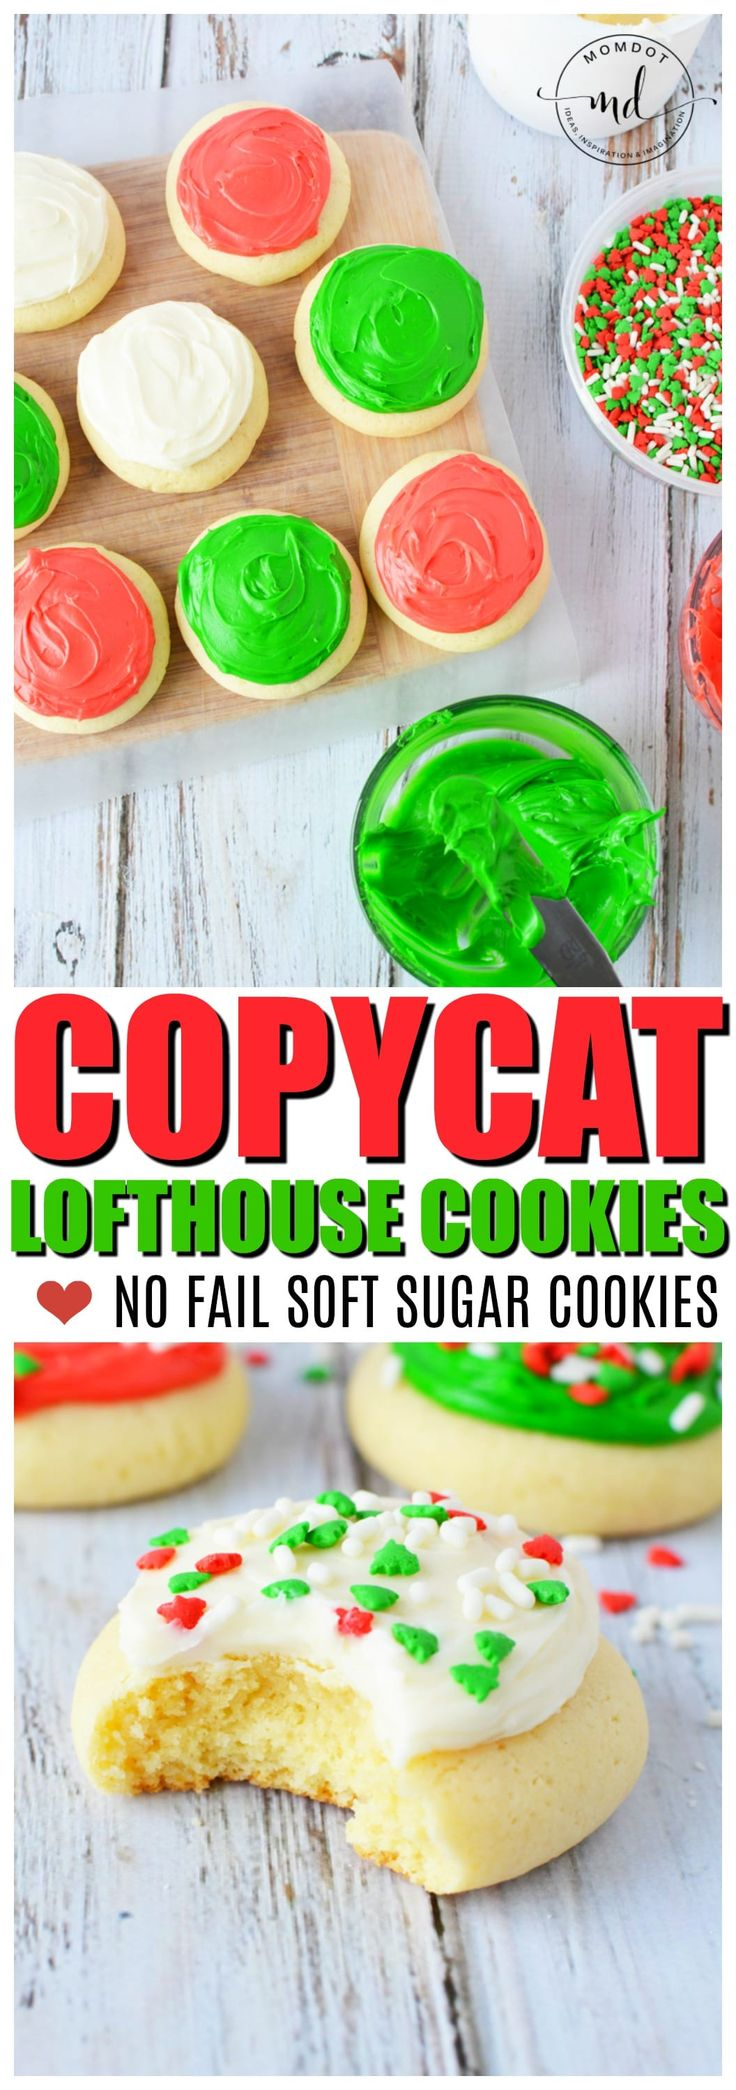 Lofthouse cookies copycat recipe, easy soft and delicious sugar cookie for the holiday season - BEST copycat out there